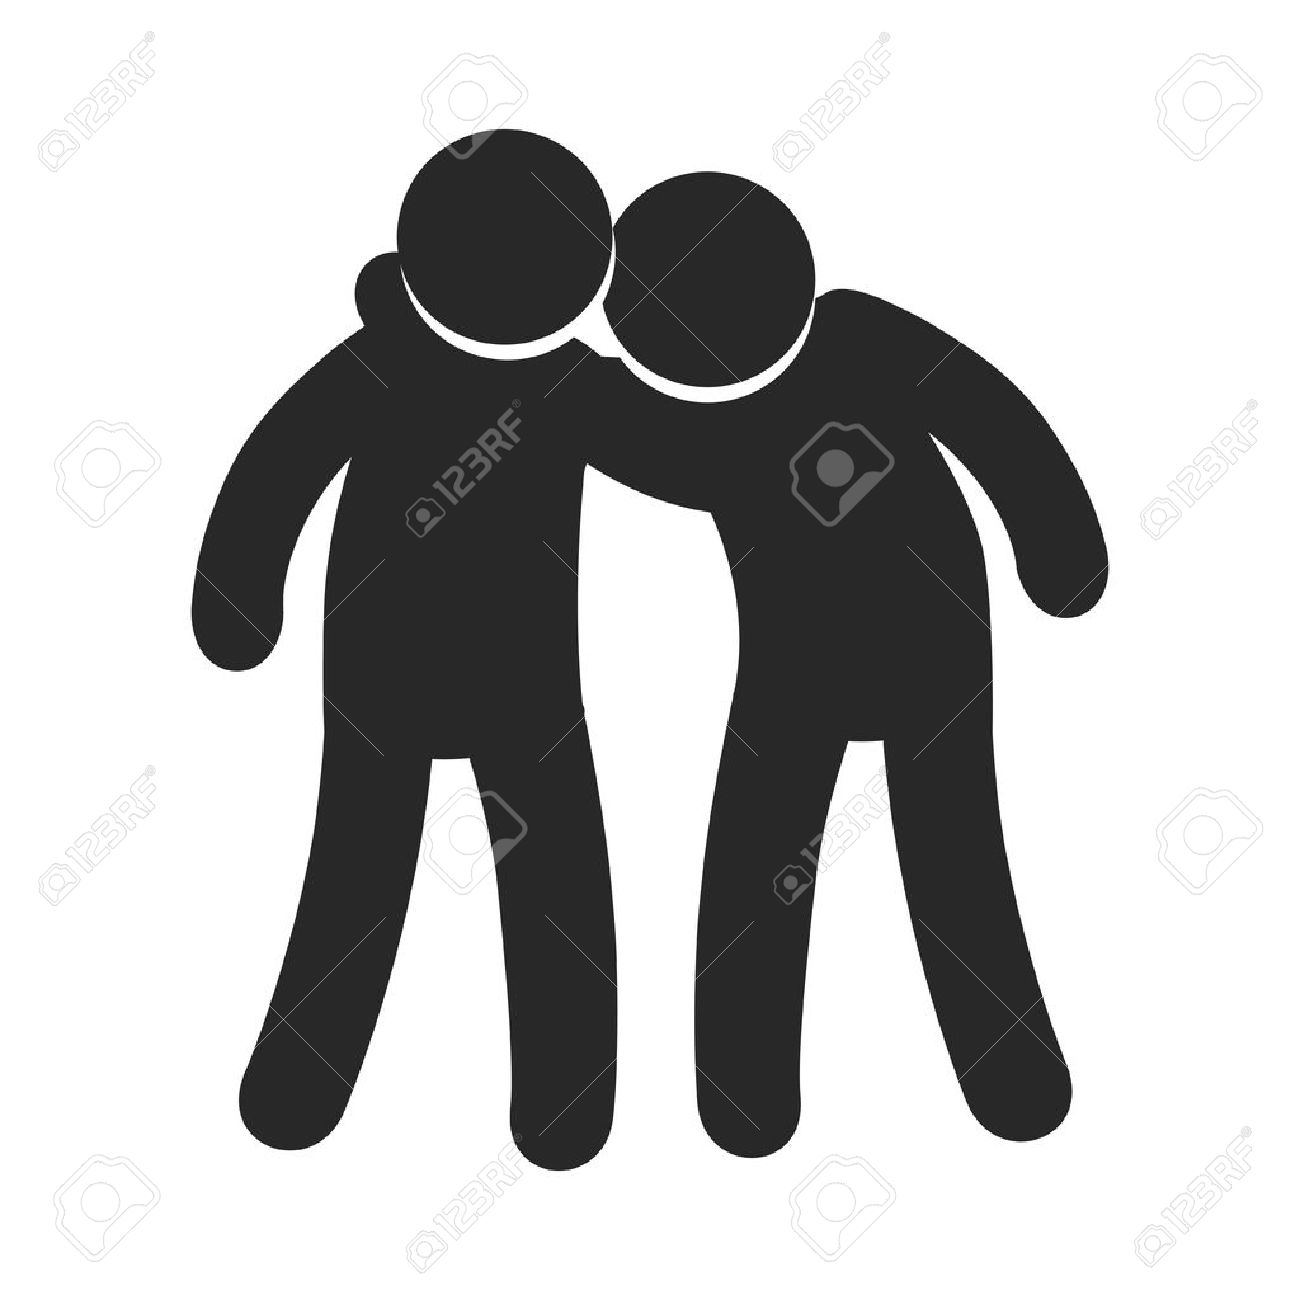 Two pictogram friends together friendship symbol vector two pictogram friends together friendship symbol vector illustration stock vector 62257378 biocorpaavc Images